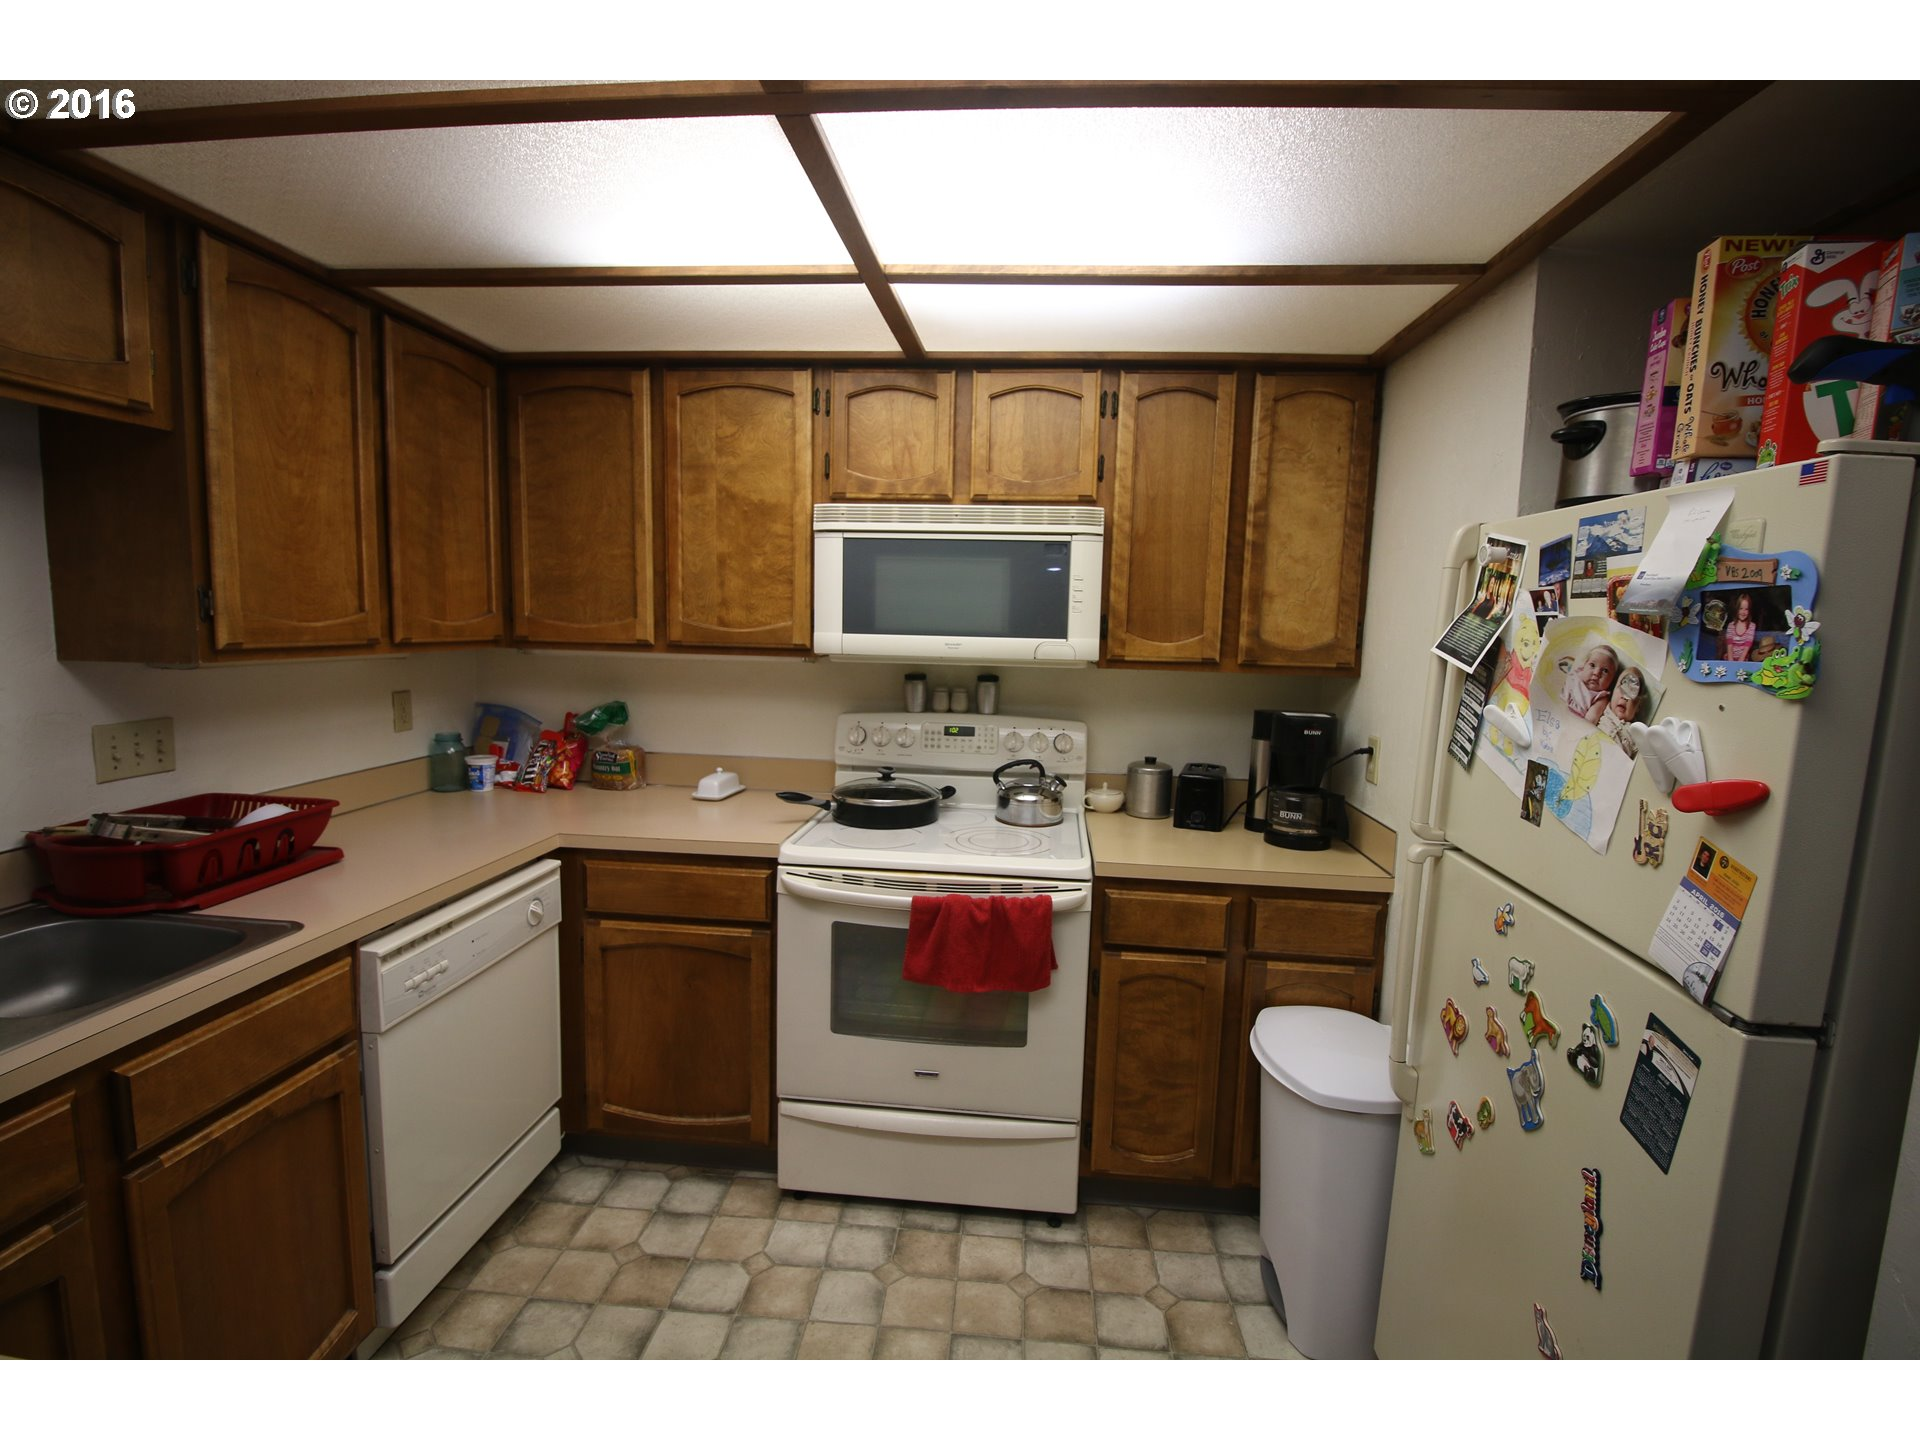 880 sq. ft 2 bedrooms 2 bathrooms  House For Sale, Springfield, OR